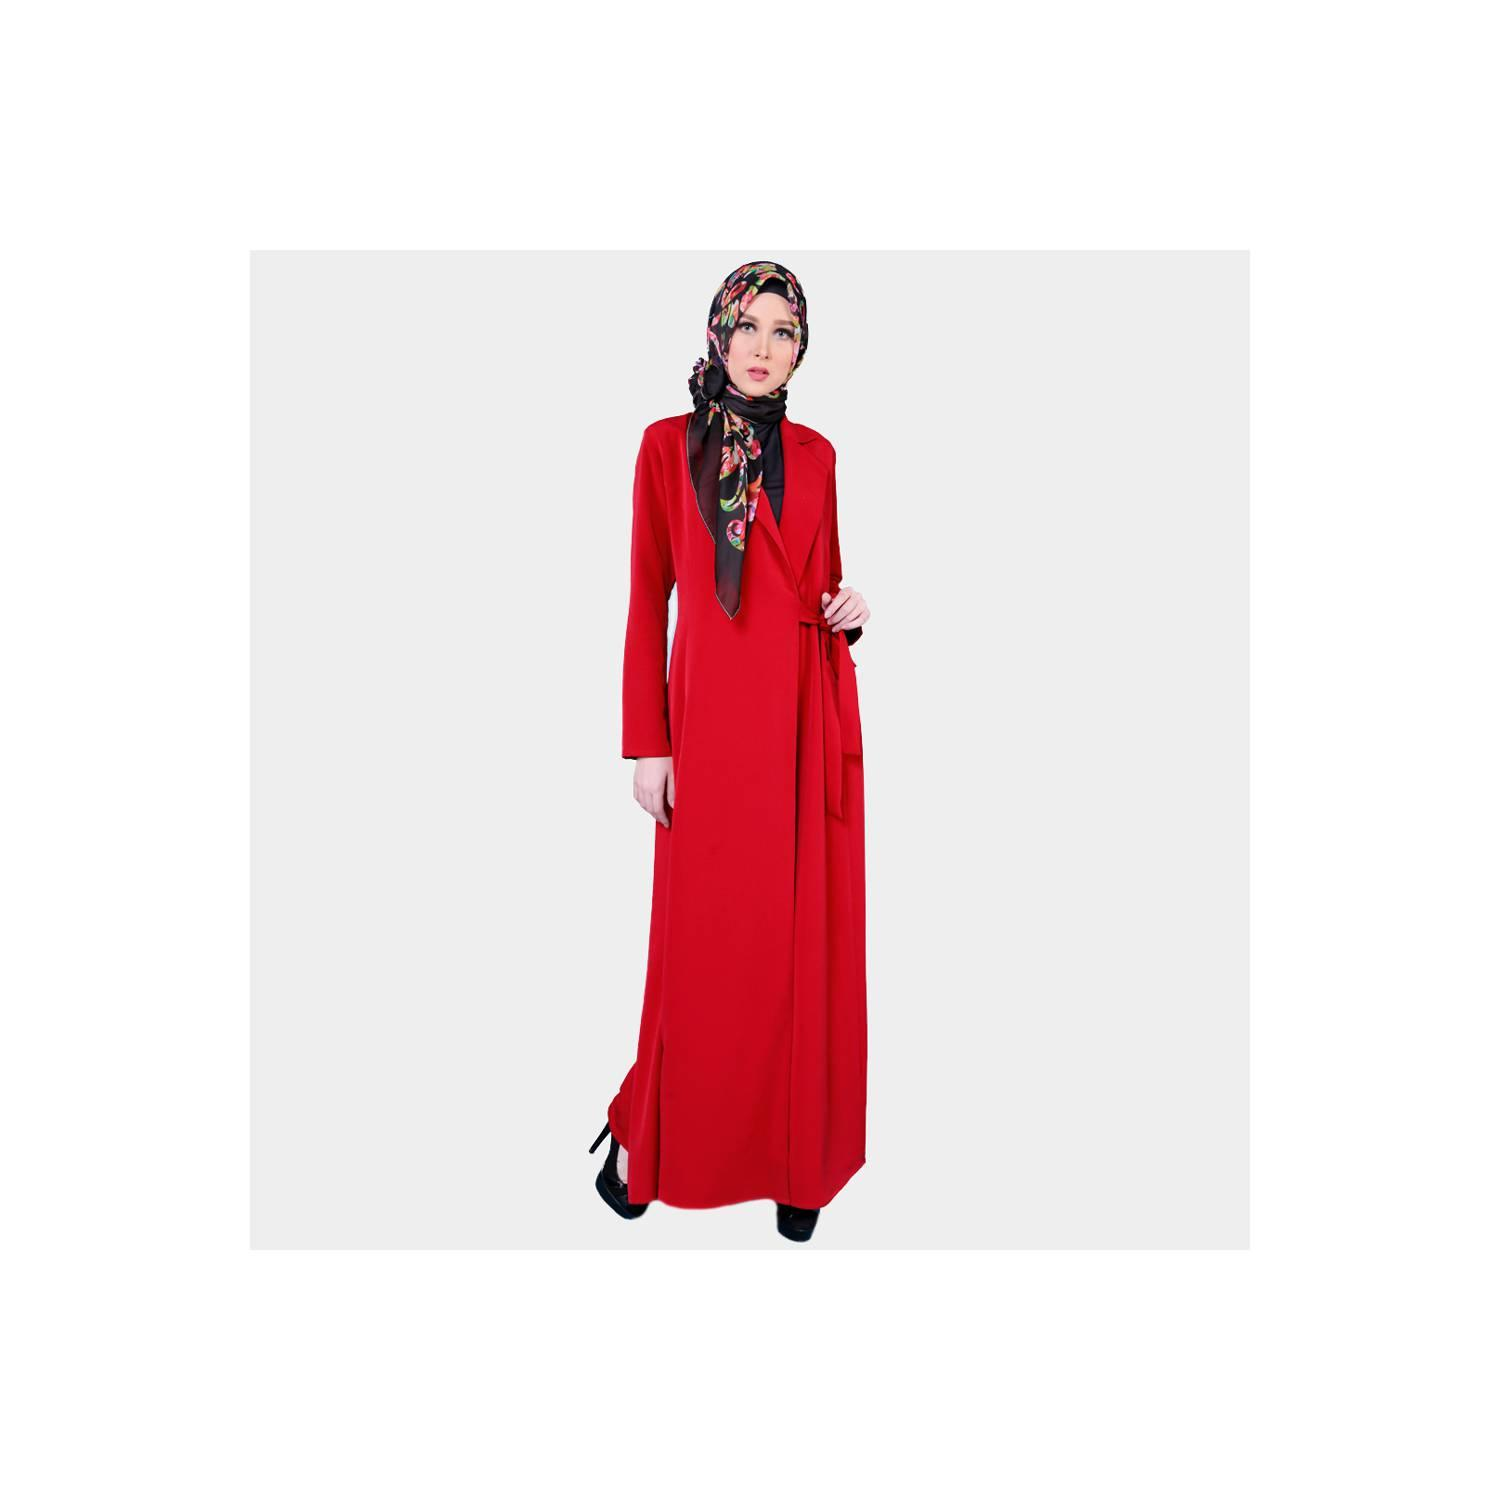 Zoya Gamis Muslimah Dress Motif Polos - Zulma Dress